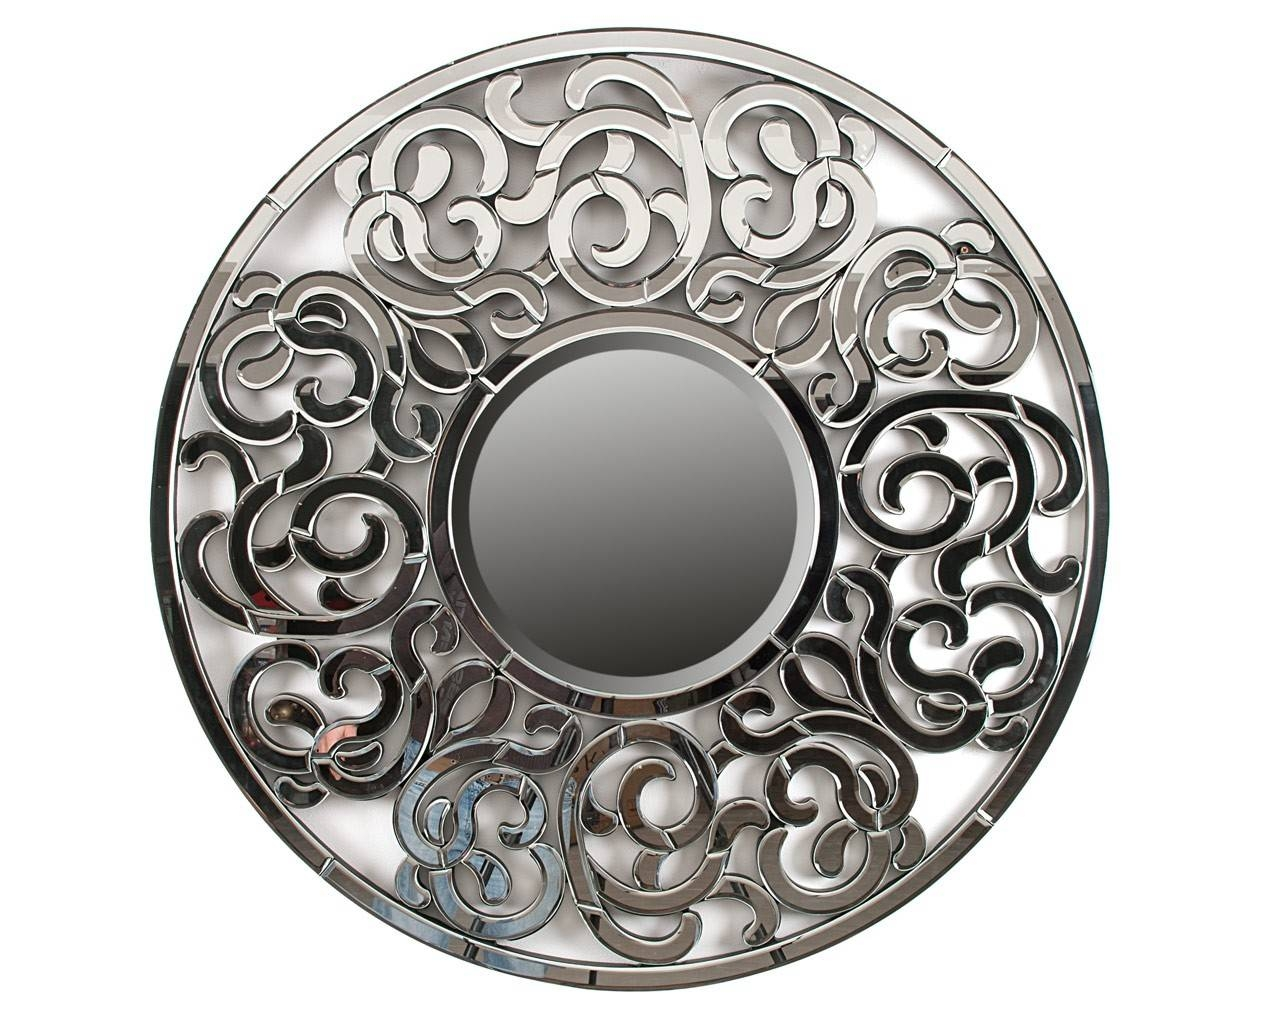 Ornate Round Mirror - Designer Wall Art - Puji Accessories inside Ornate Round Mirrors (Image 20 of 25)